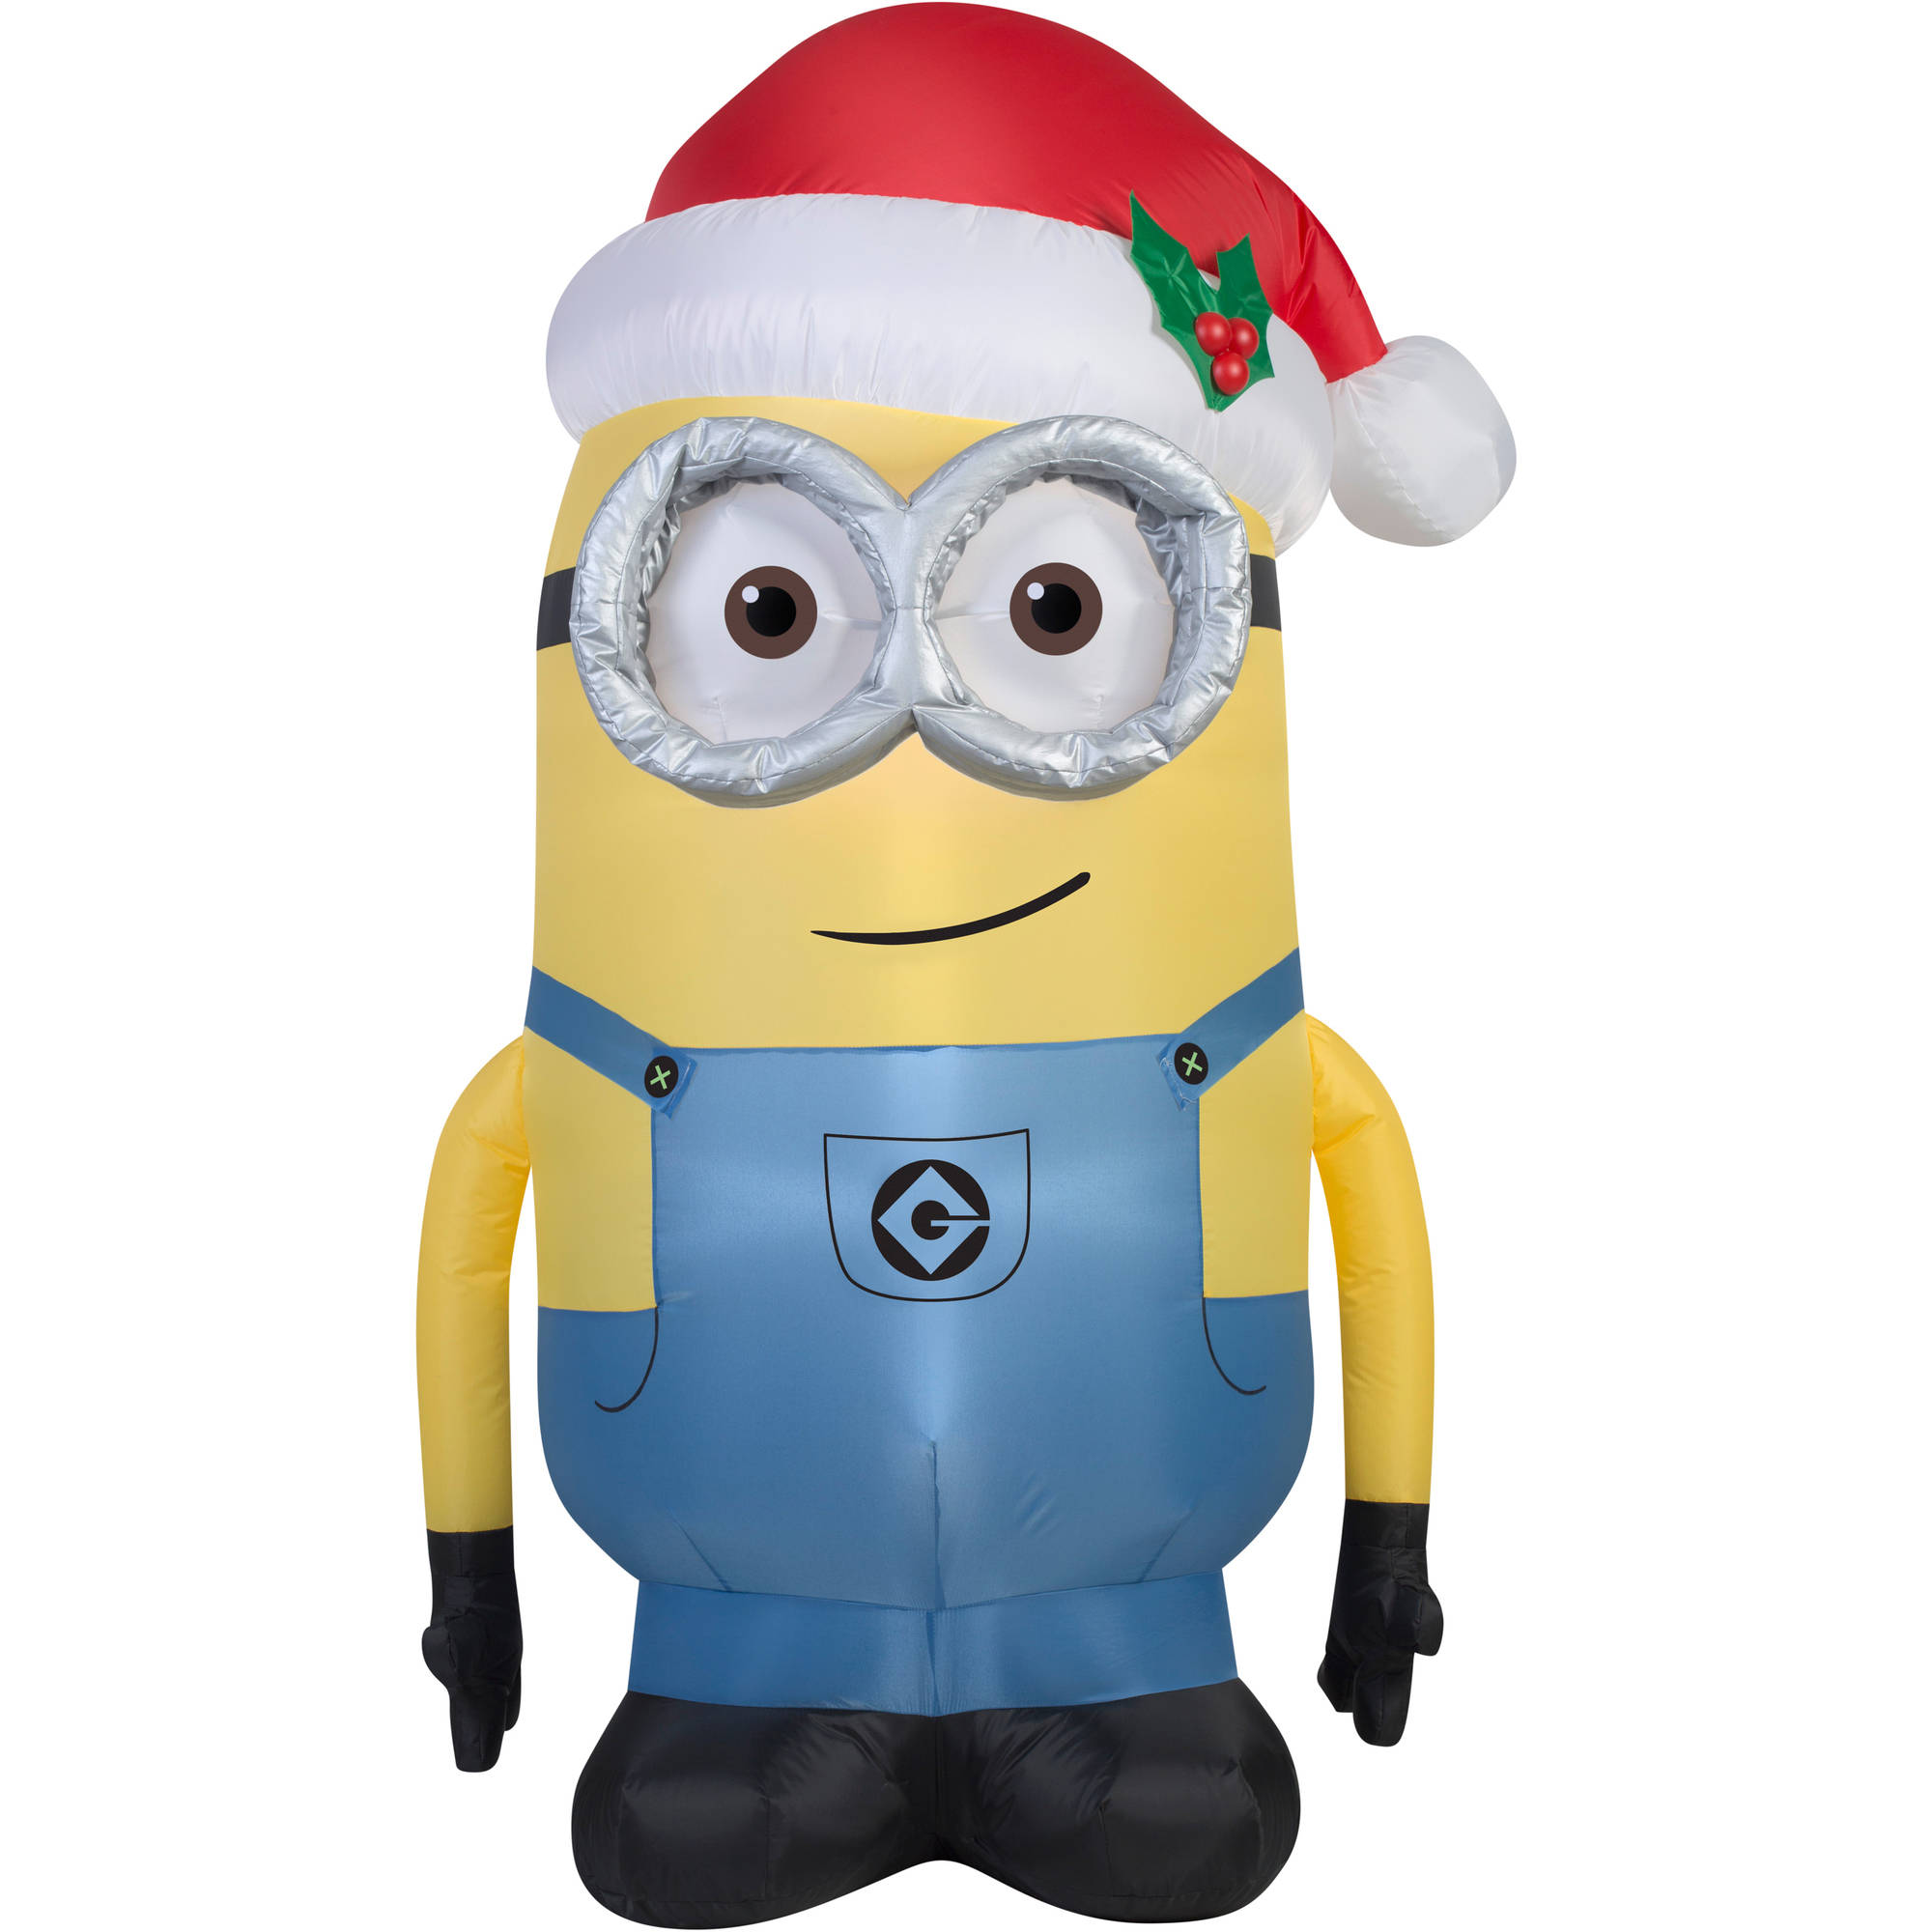 5' Airblown Inflatable Minion Dave with Santa Hat Universal Christmas Inflatable